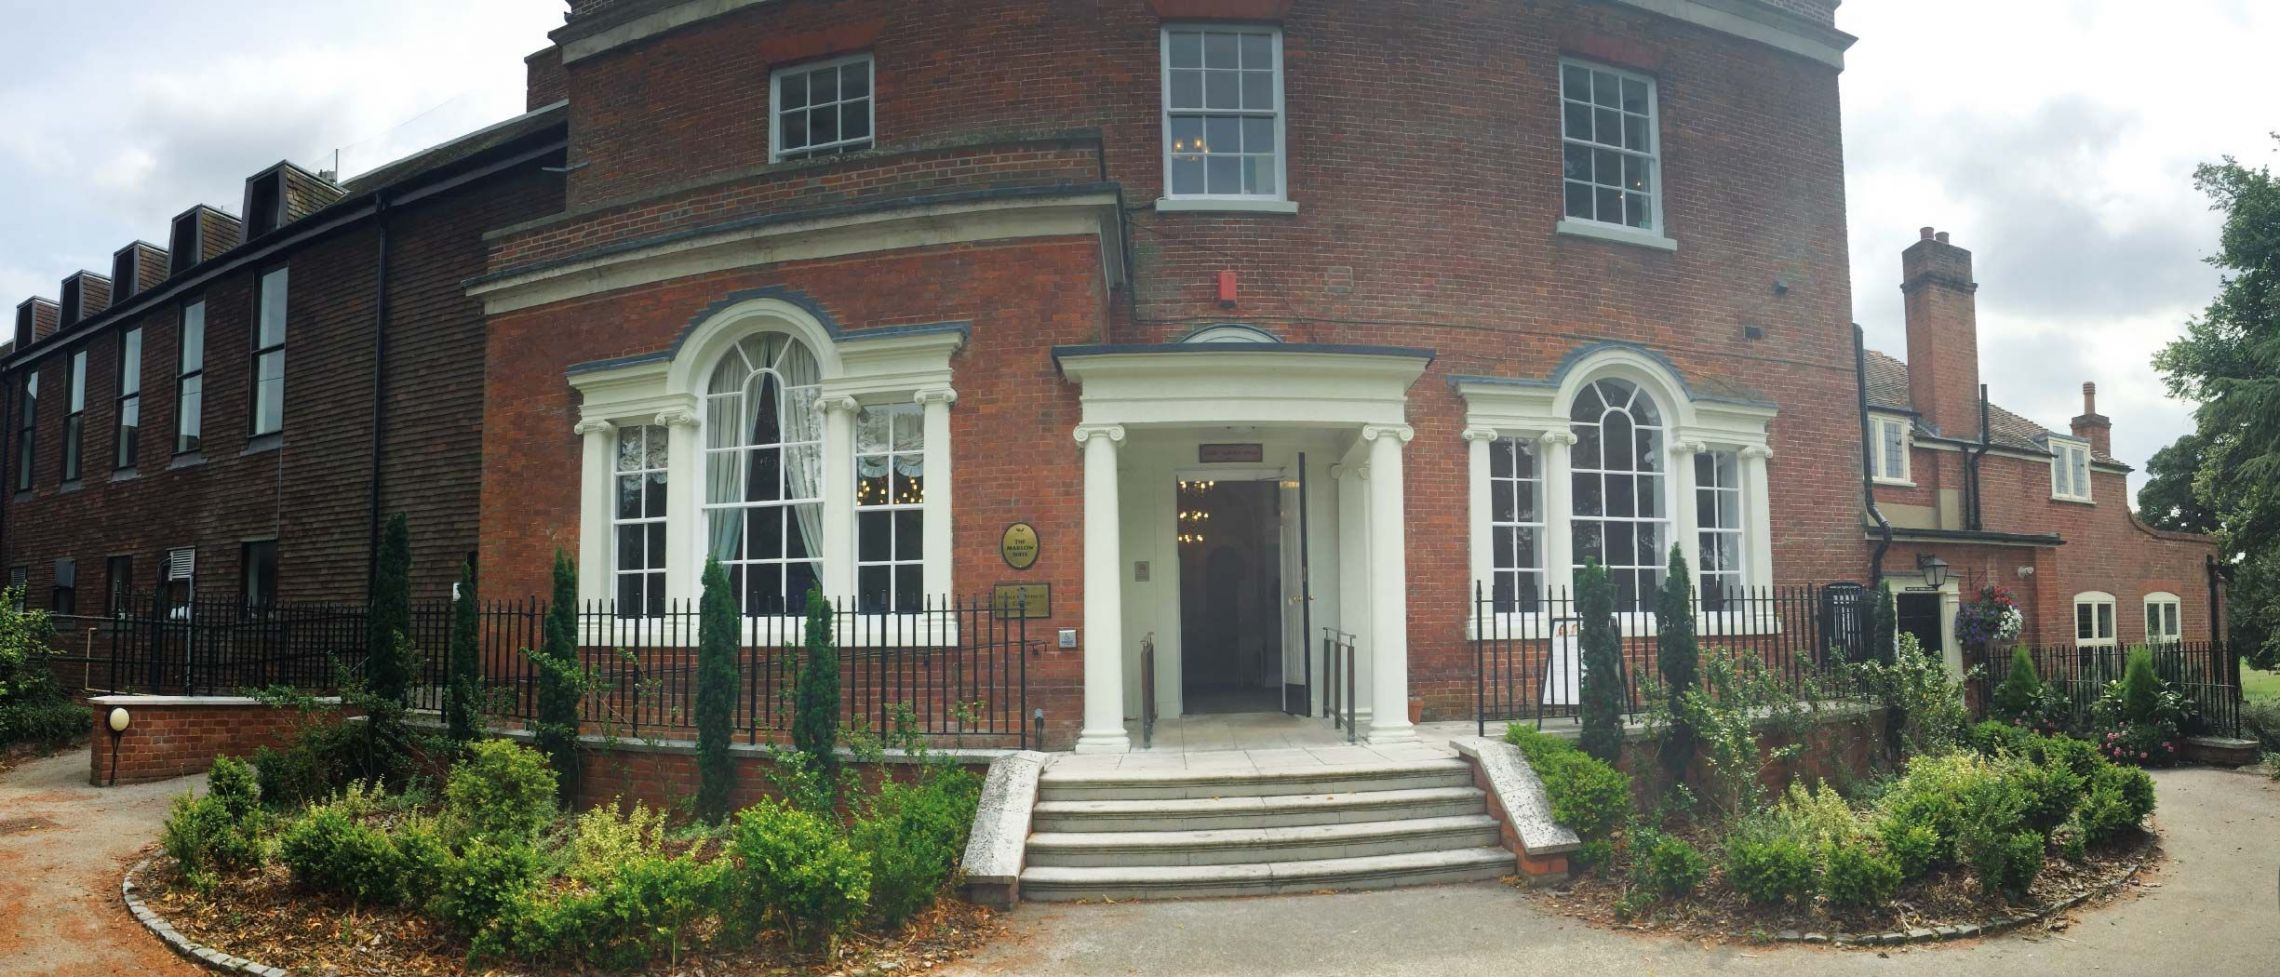 The Harley Medical Group Marlow